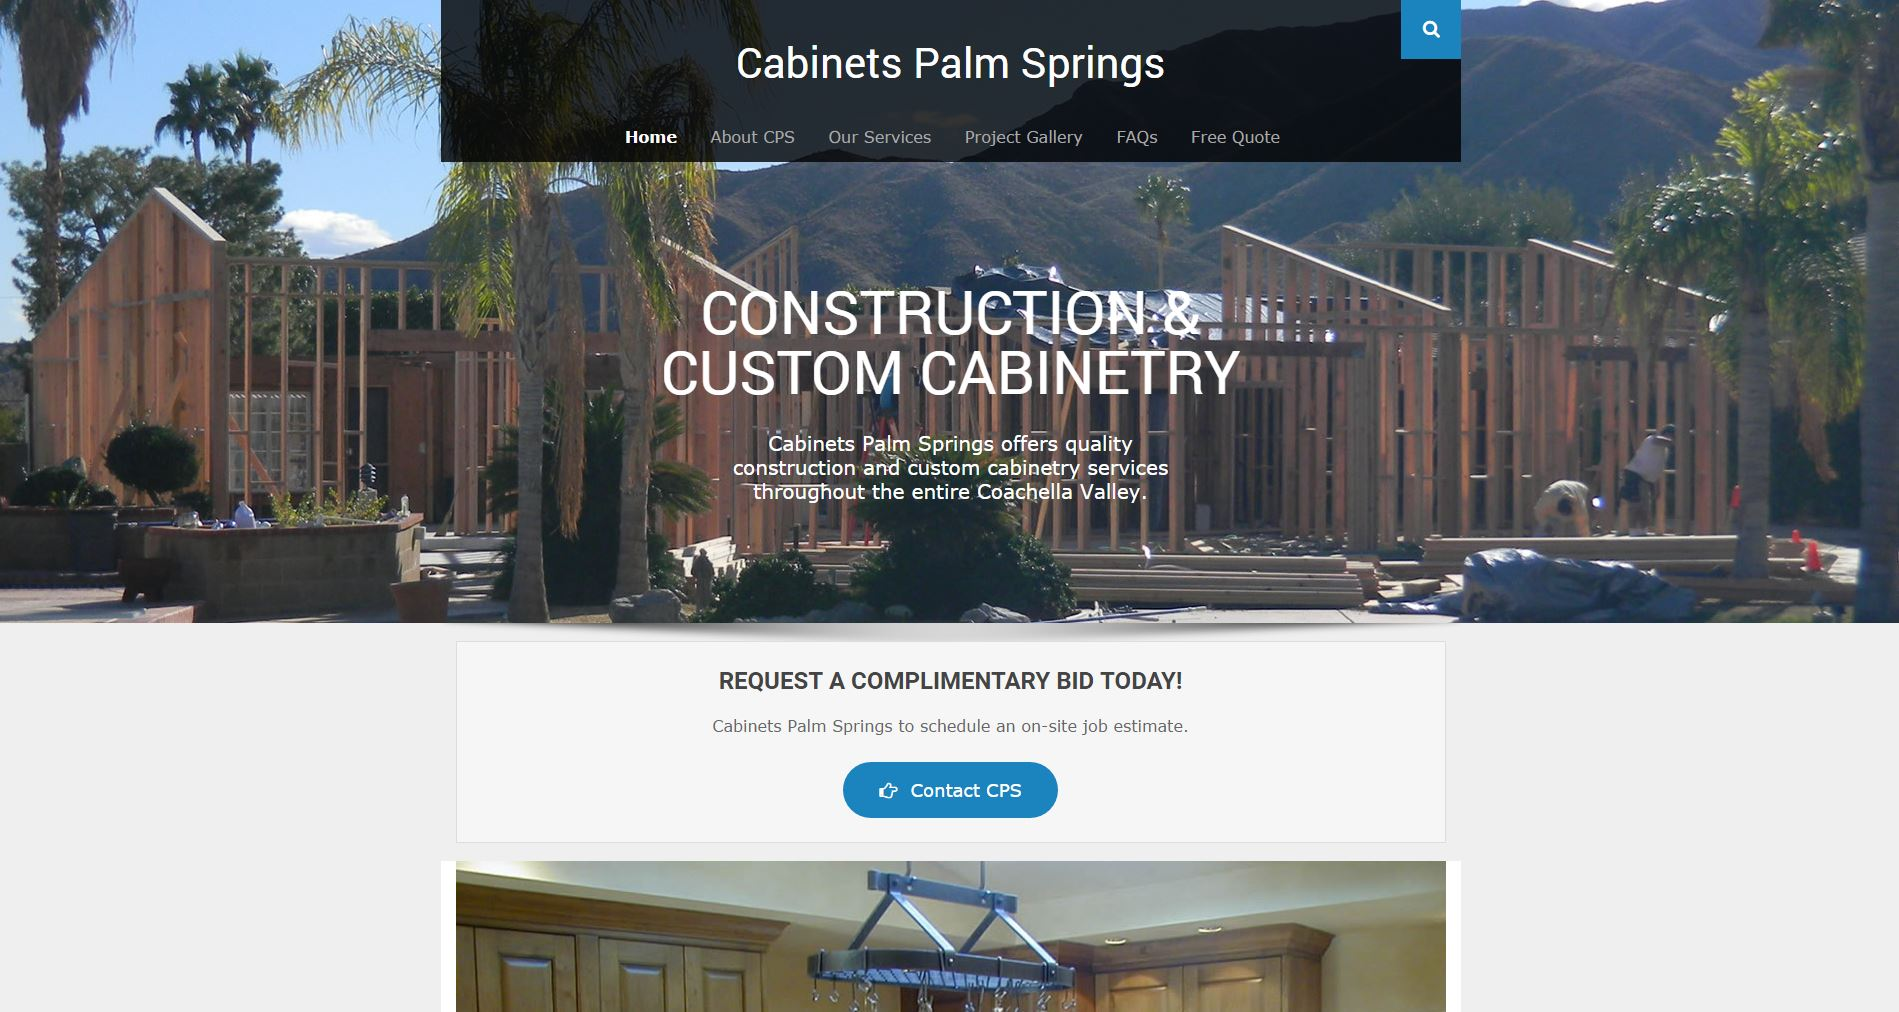 Cabinetry Construction Website Design cps1